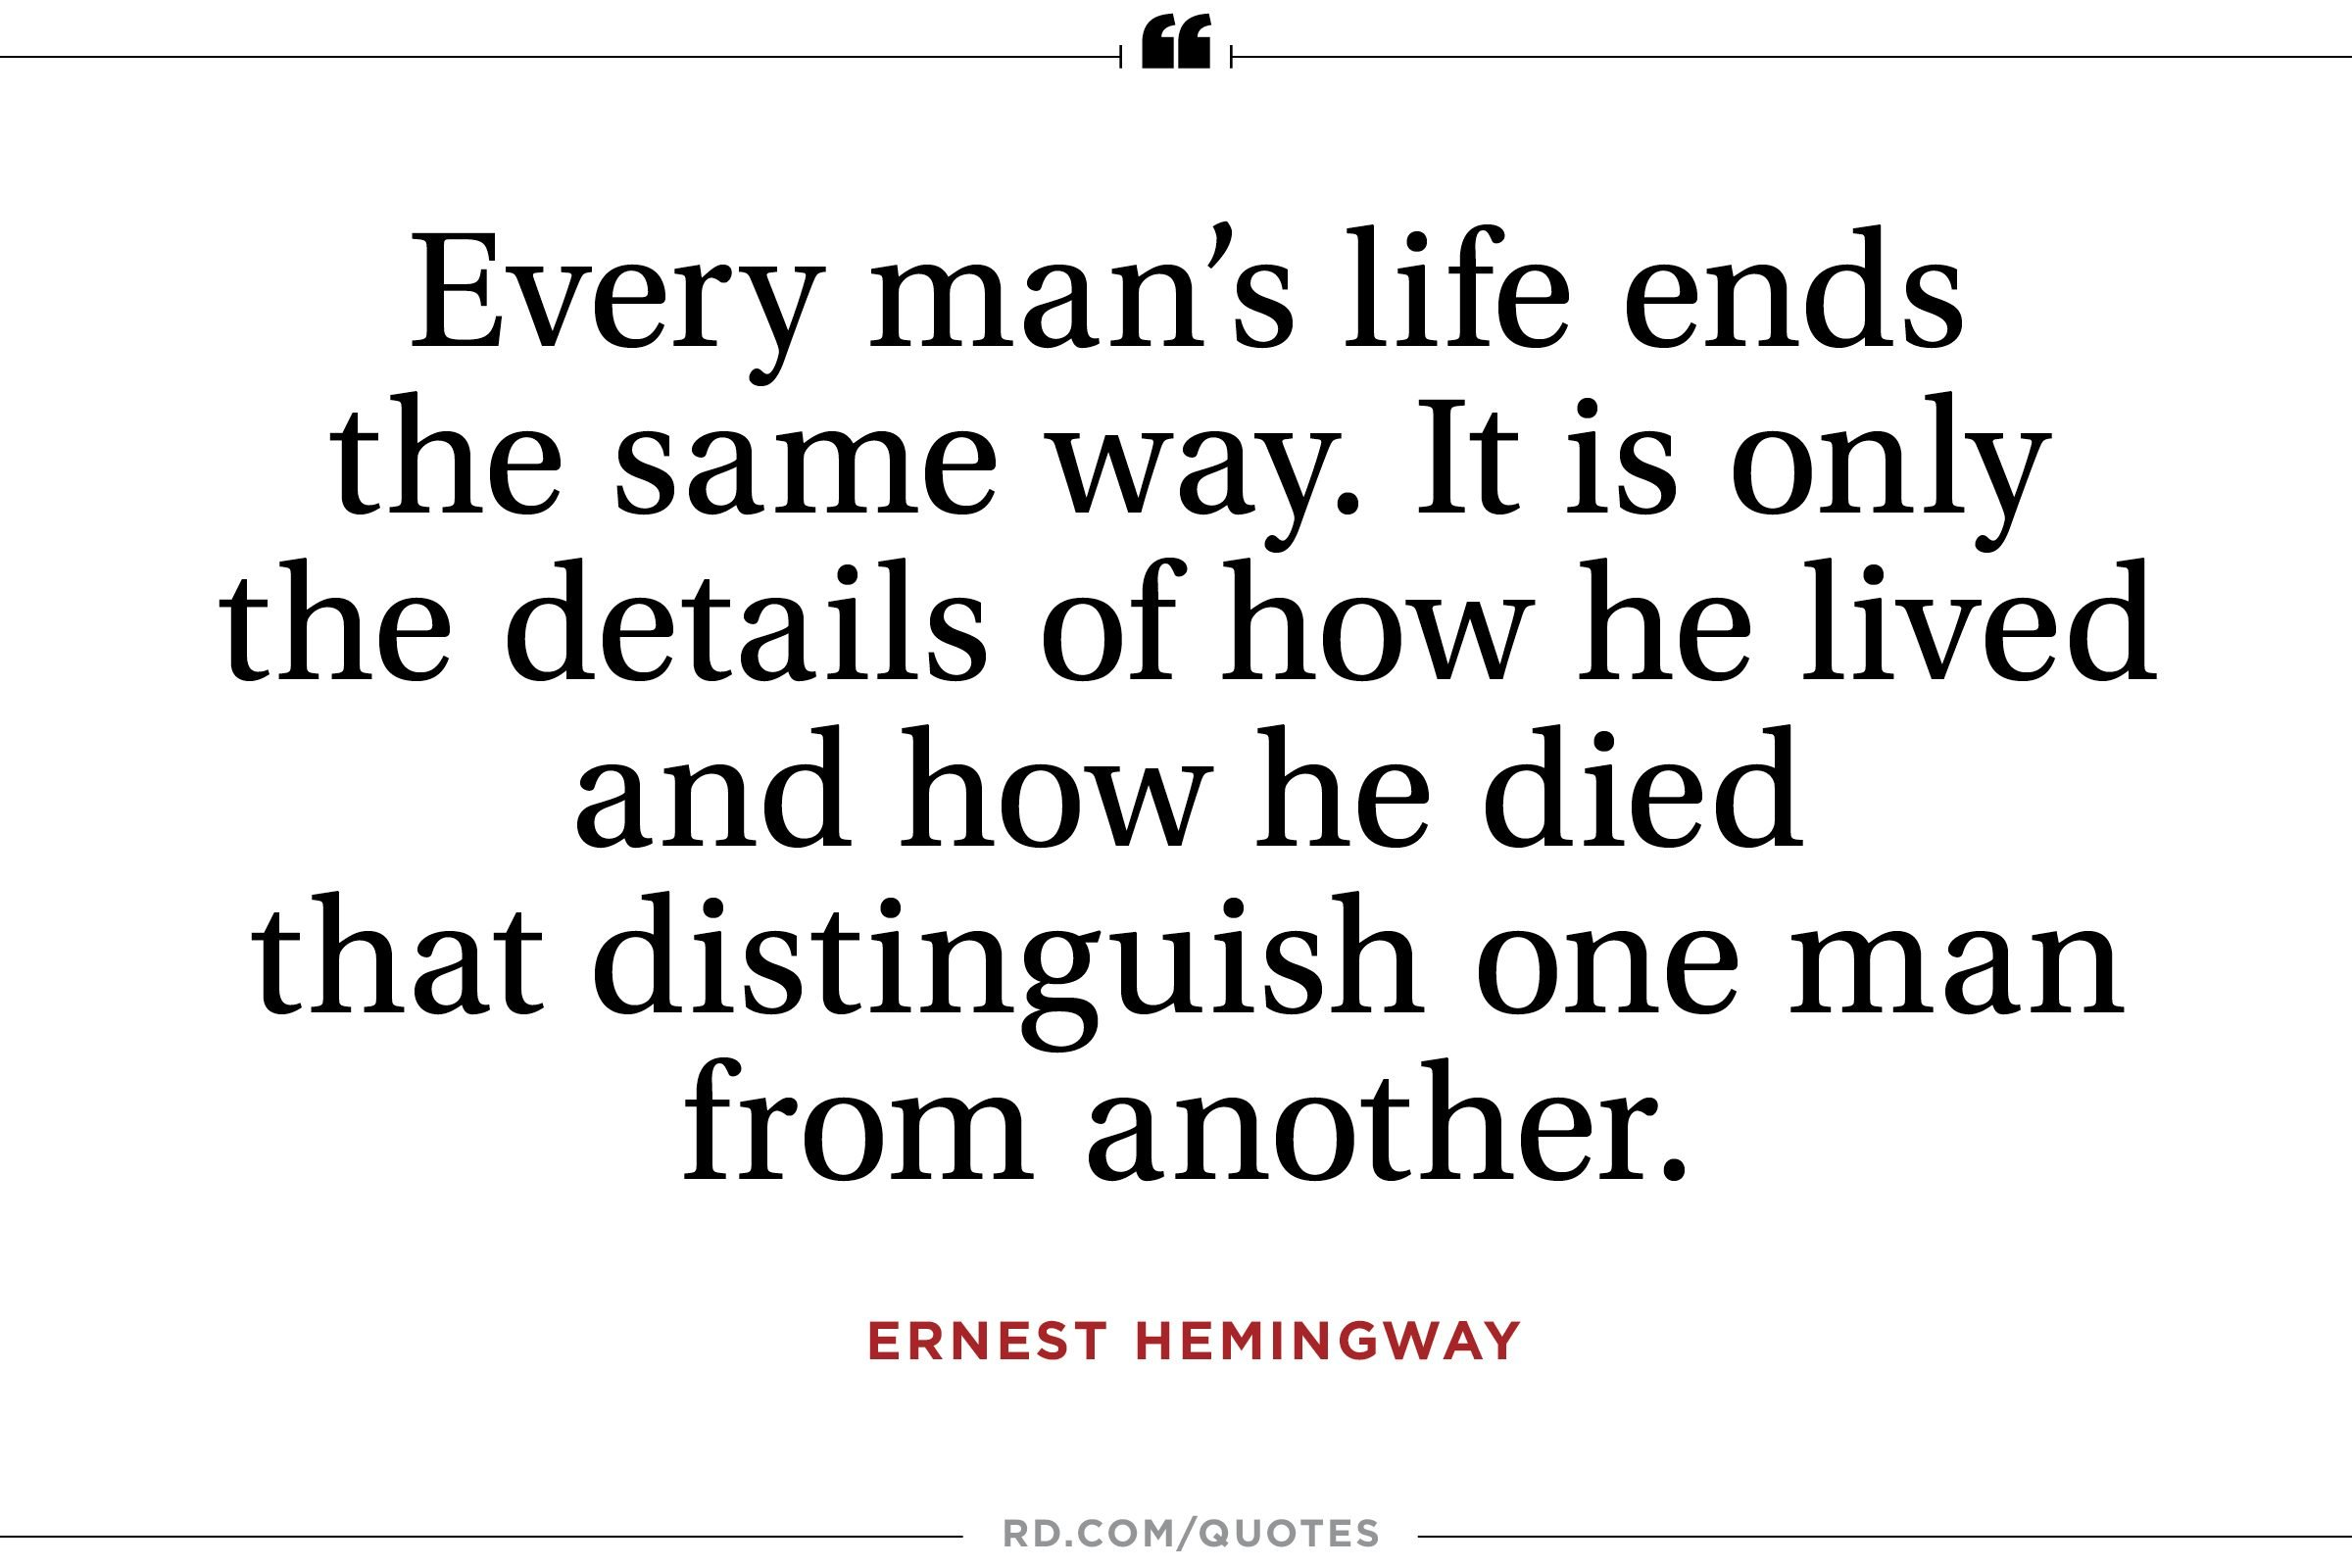 A Life Well Lived Quotes 12 Inspiring Ernest Hemingway Quotes  Reader's Digest